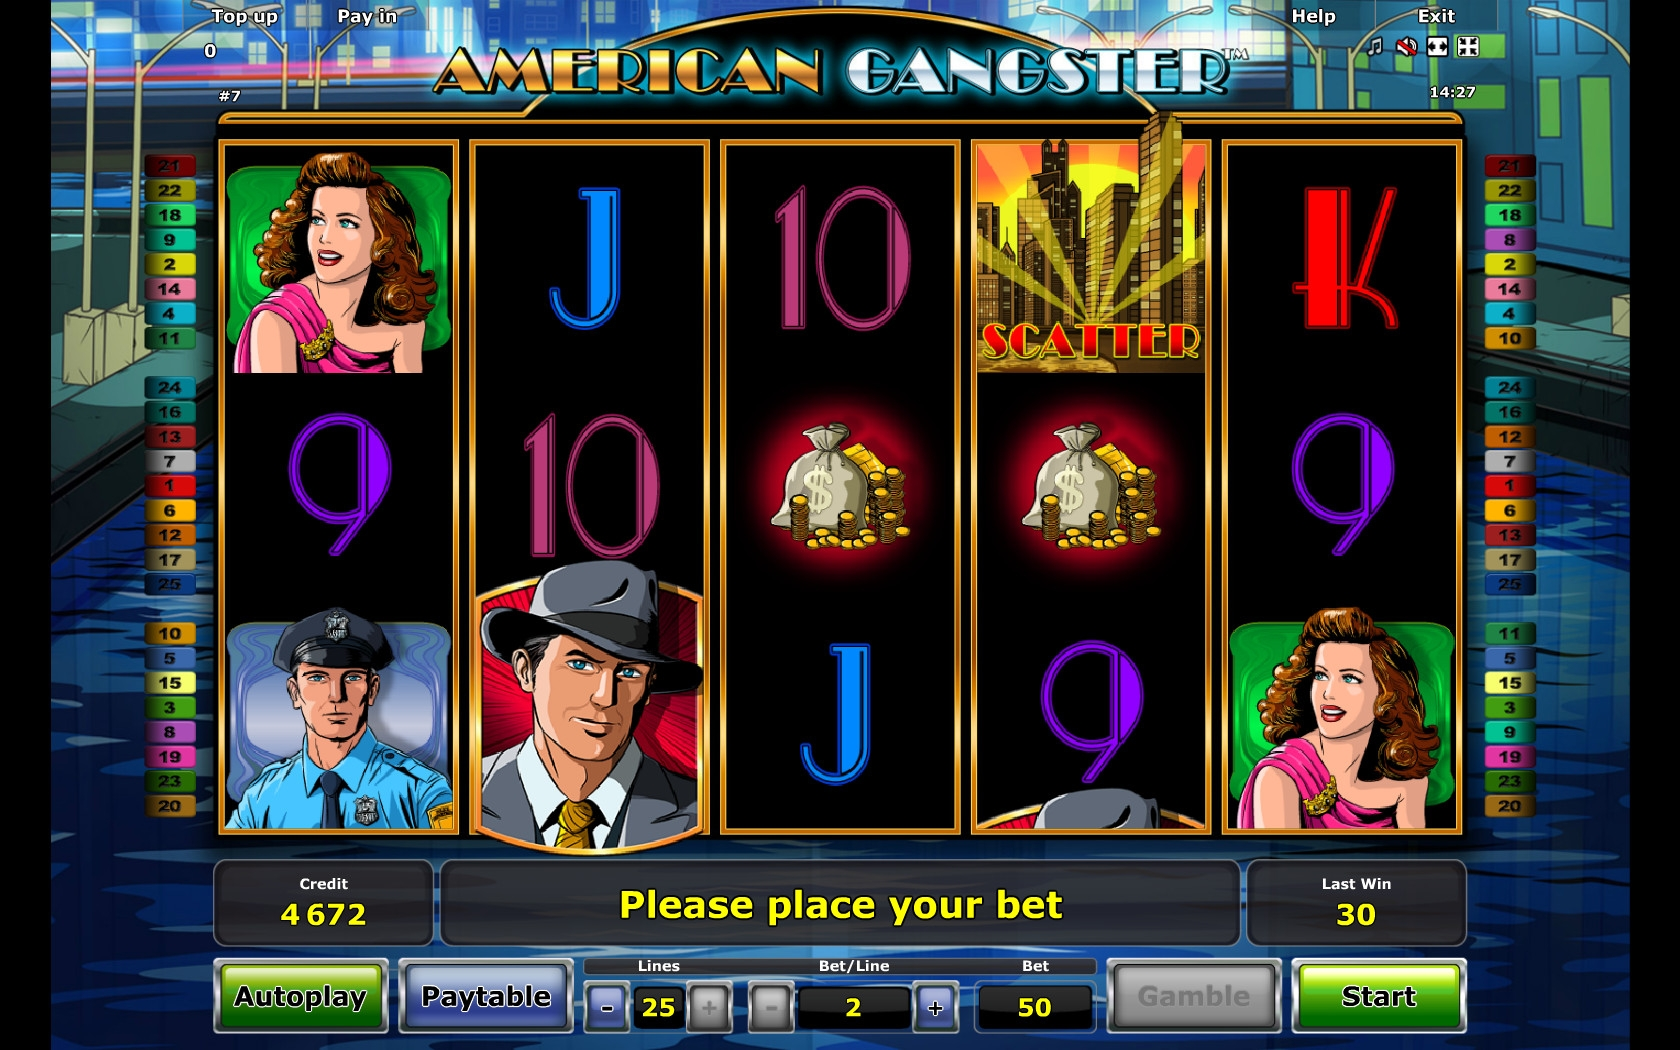 play free casino games online for free quotes from american gangster